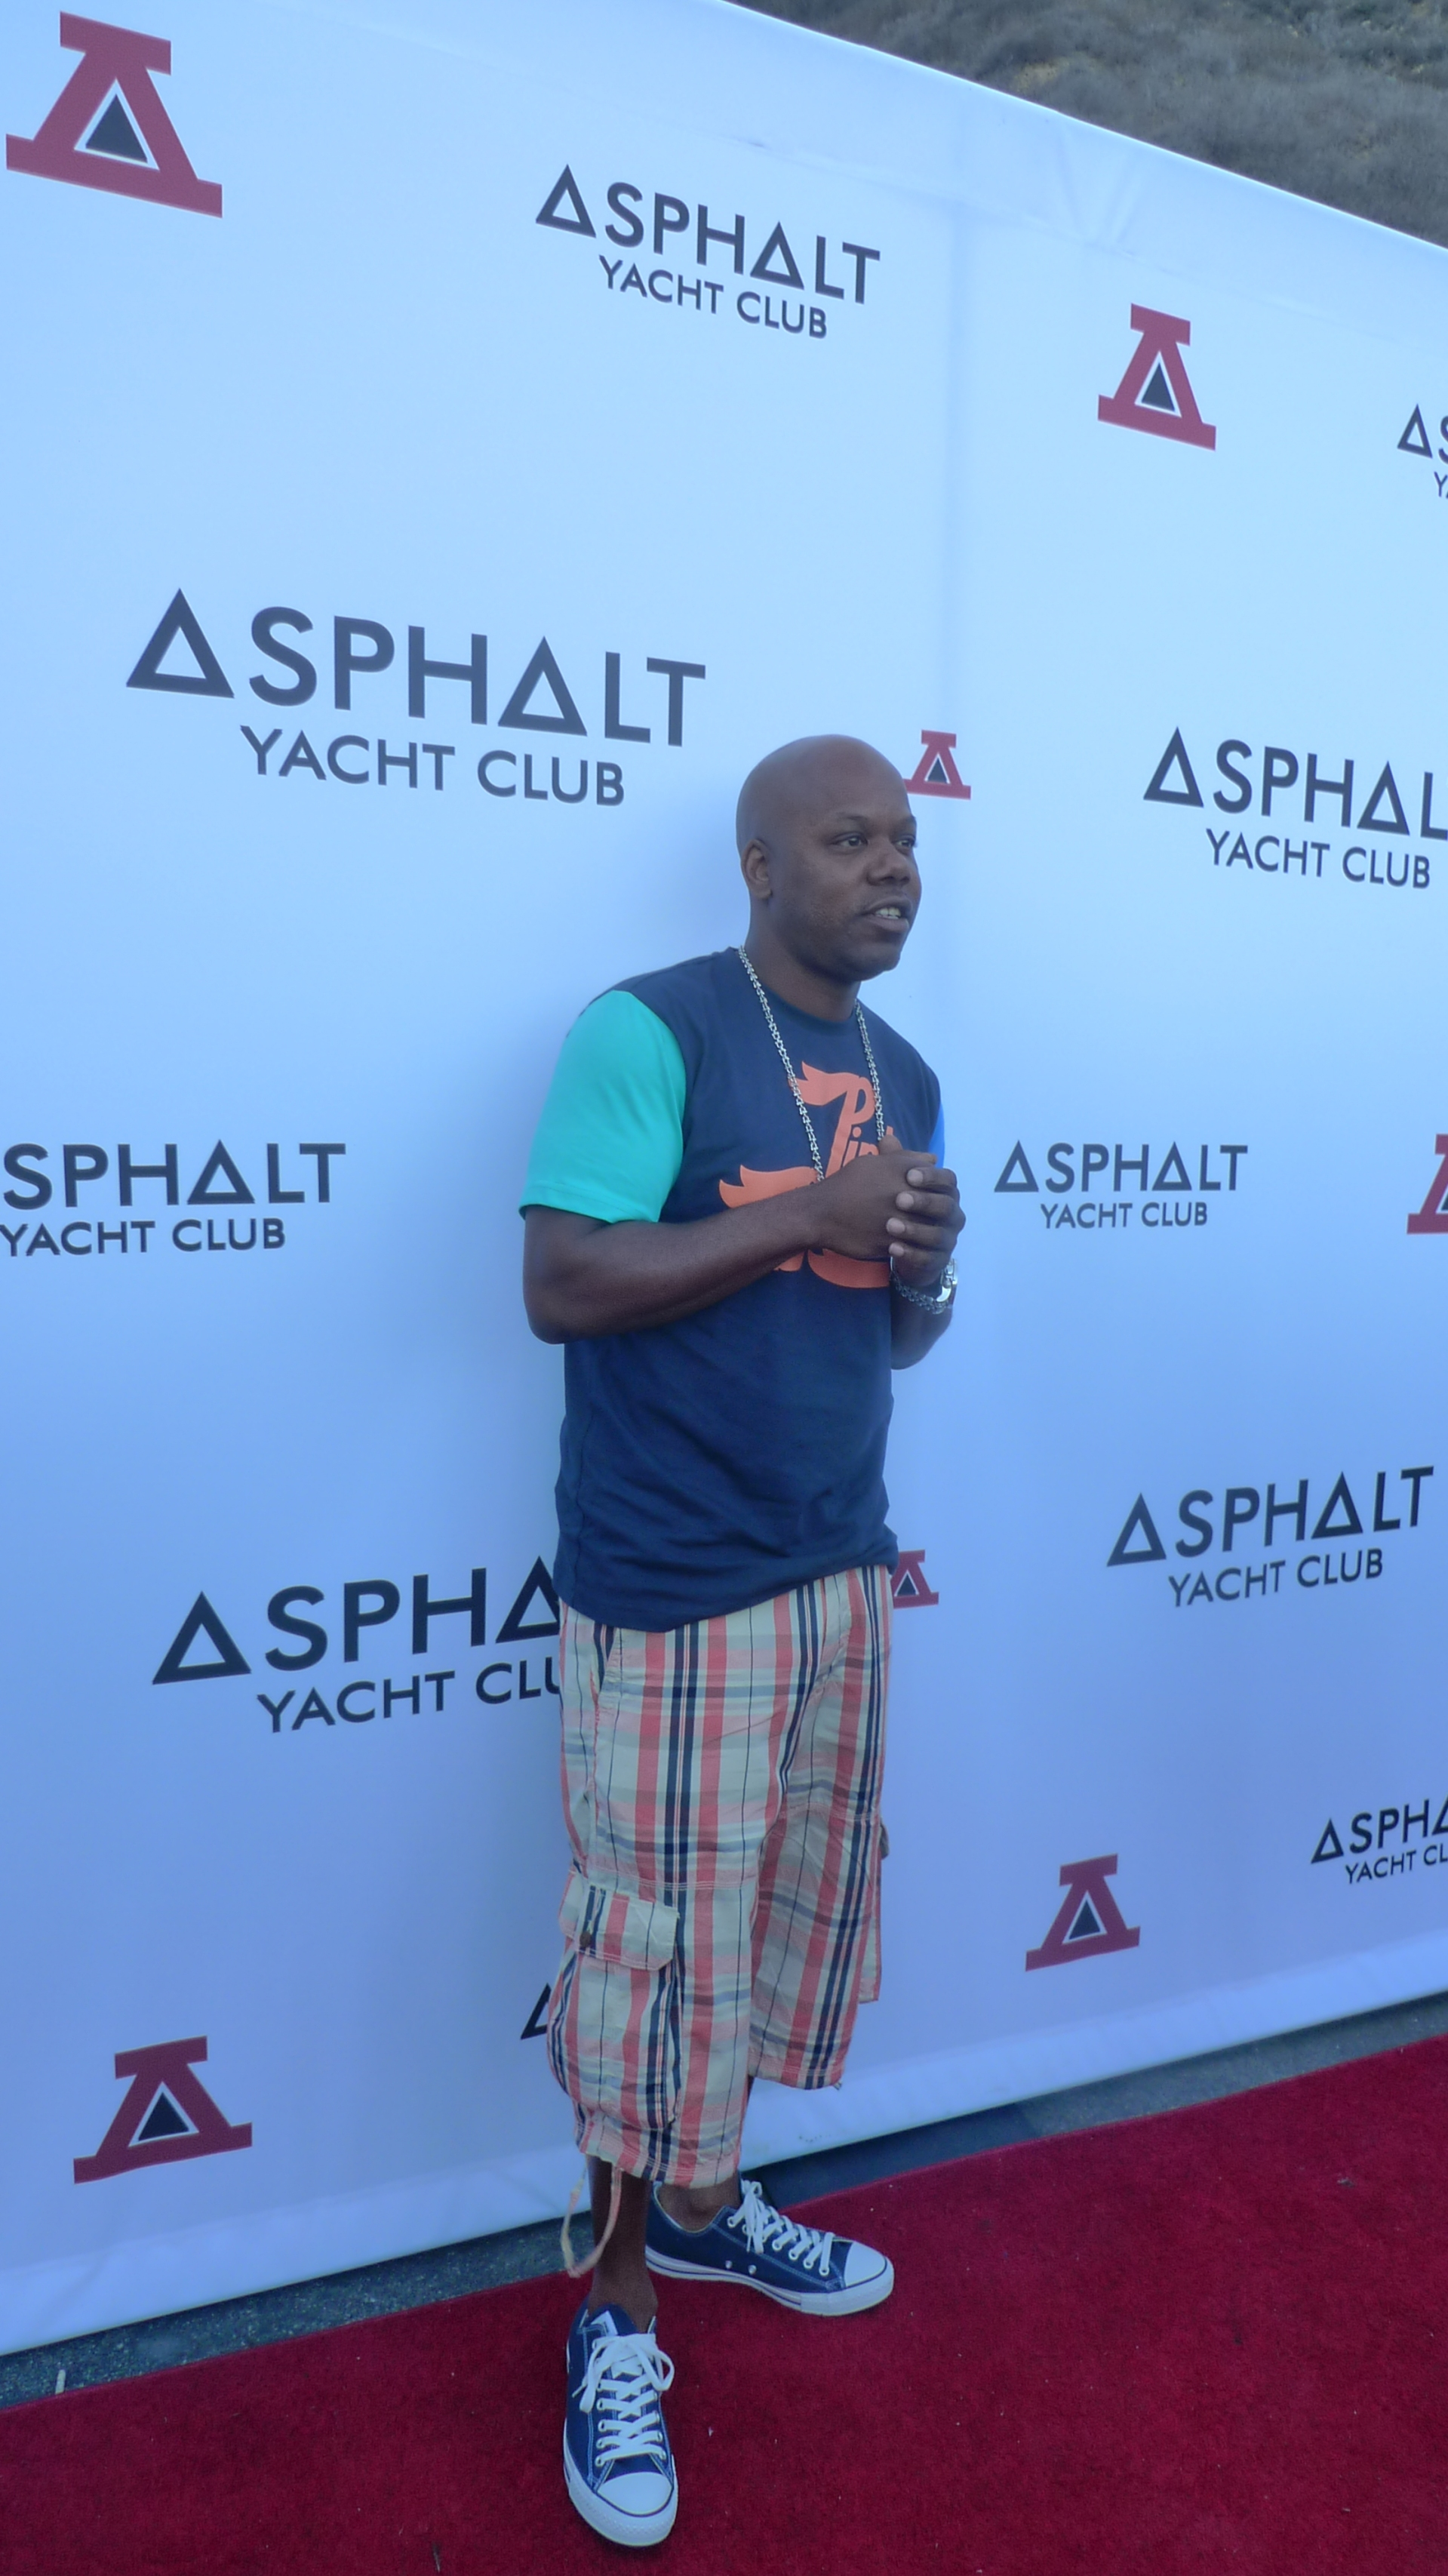 Too Short at the Asphalt Yacht Club launch party in Malibu